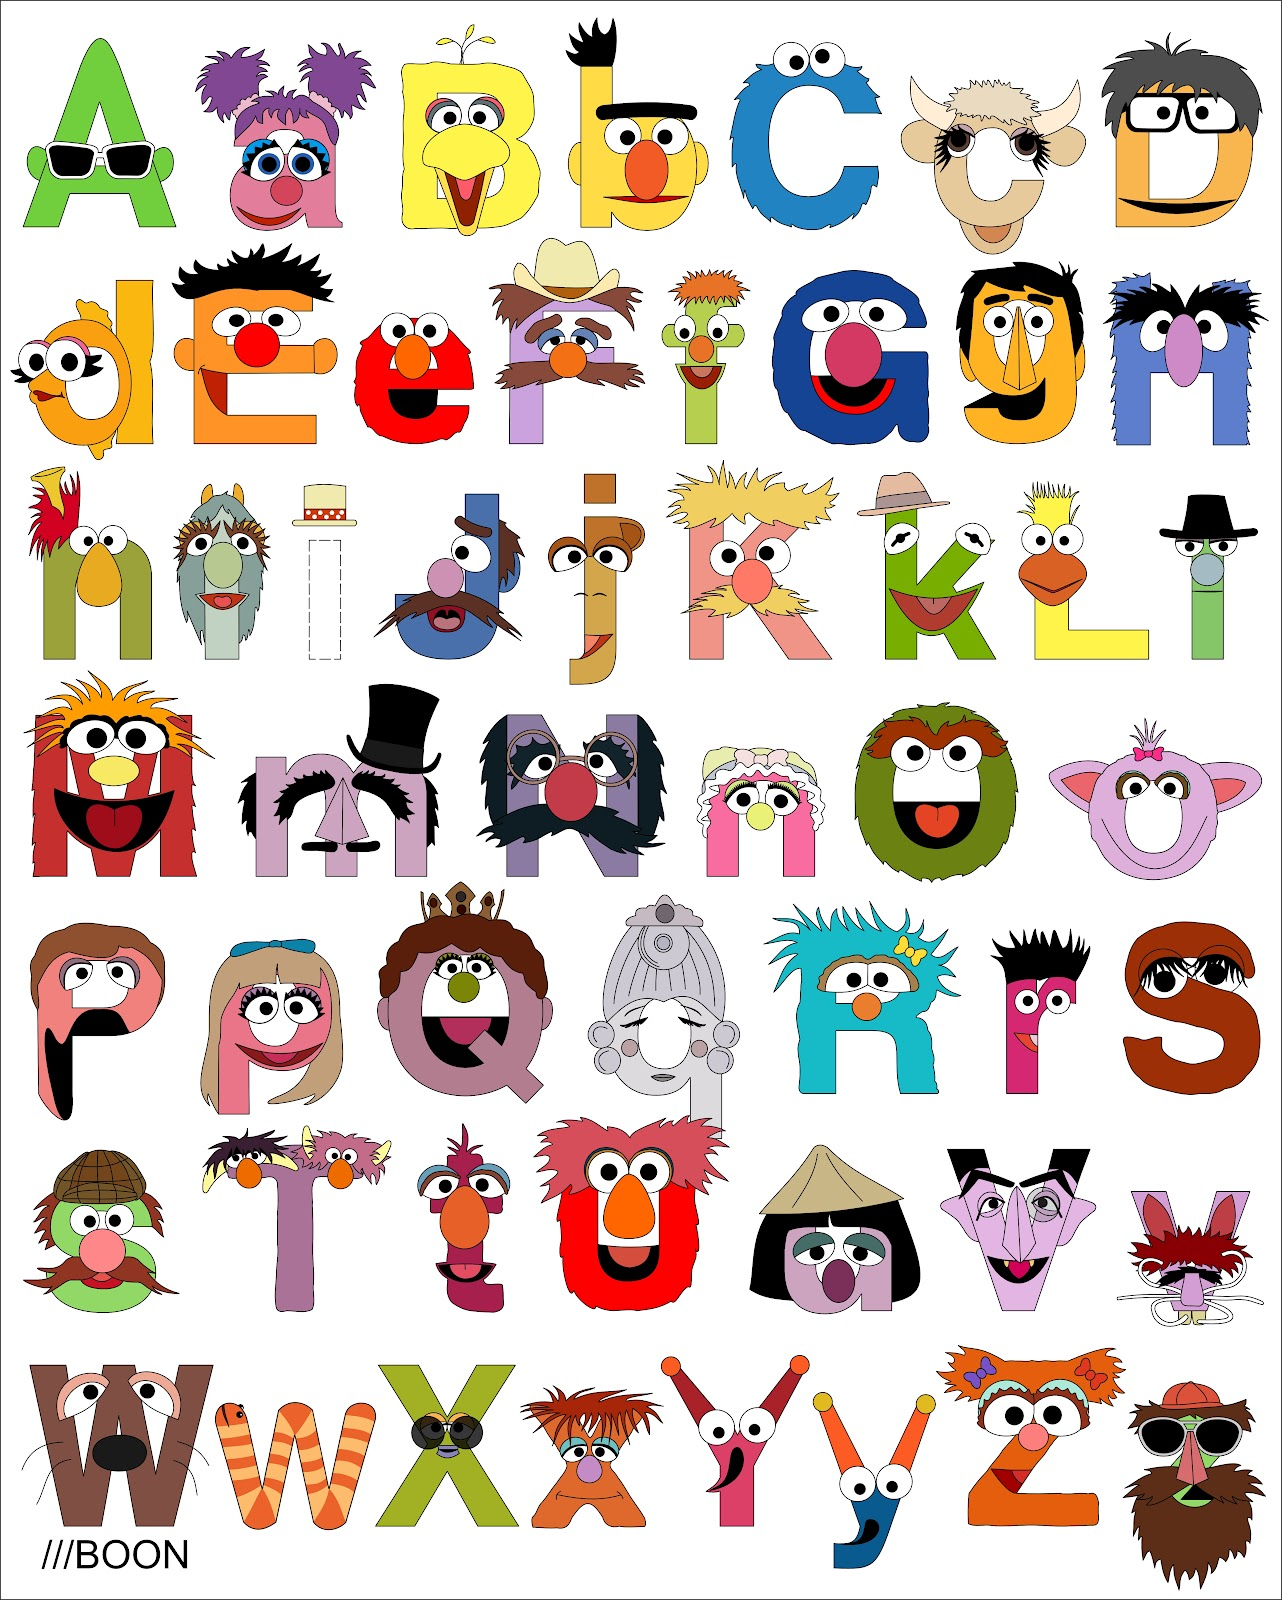 ... .blogspot.com/2012/02/sesame-street-alphabet.html for a key